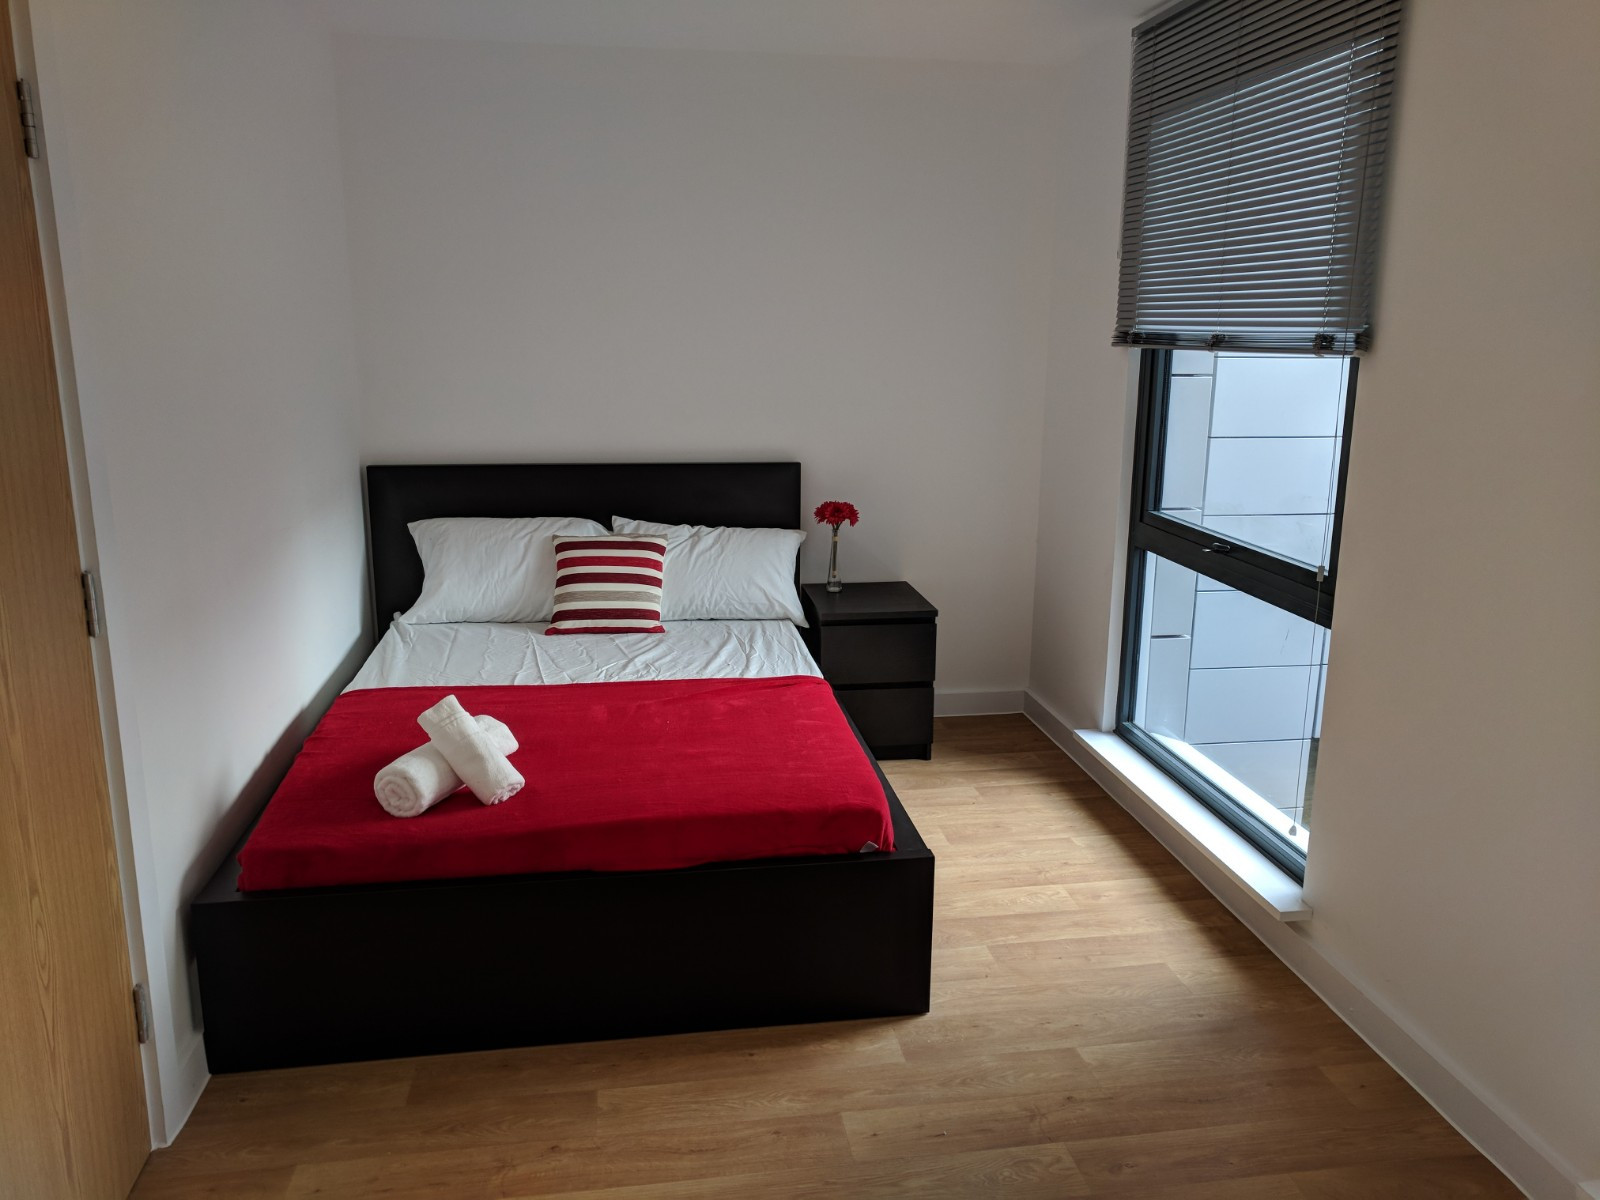 Sheffield's Westbar house double bedroom